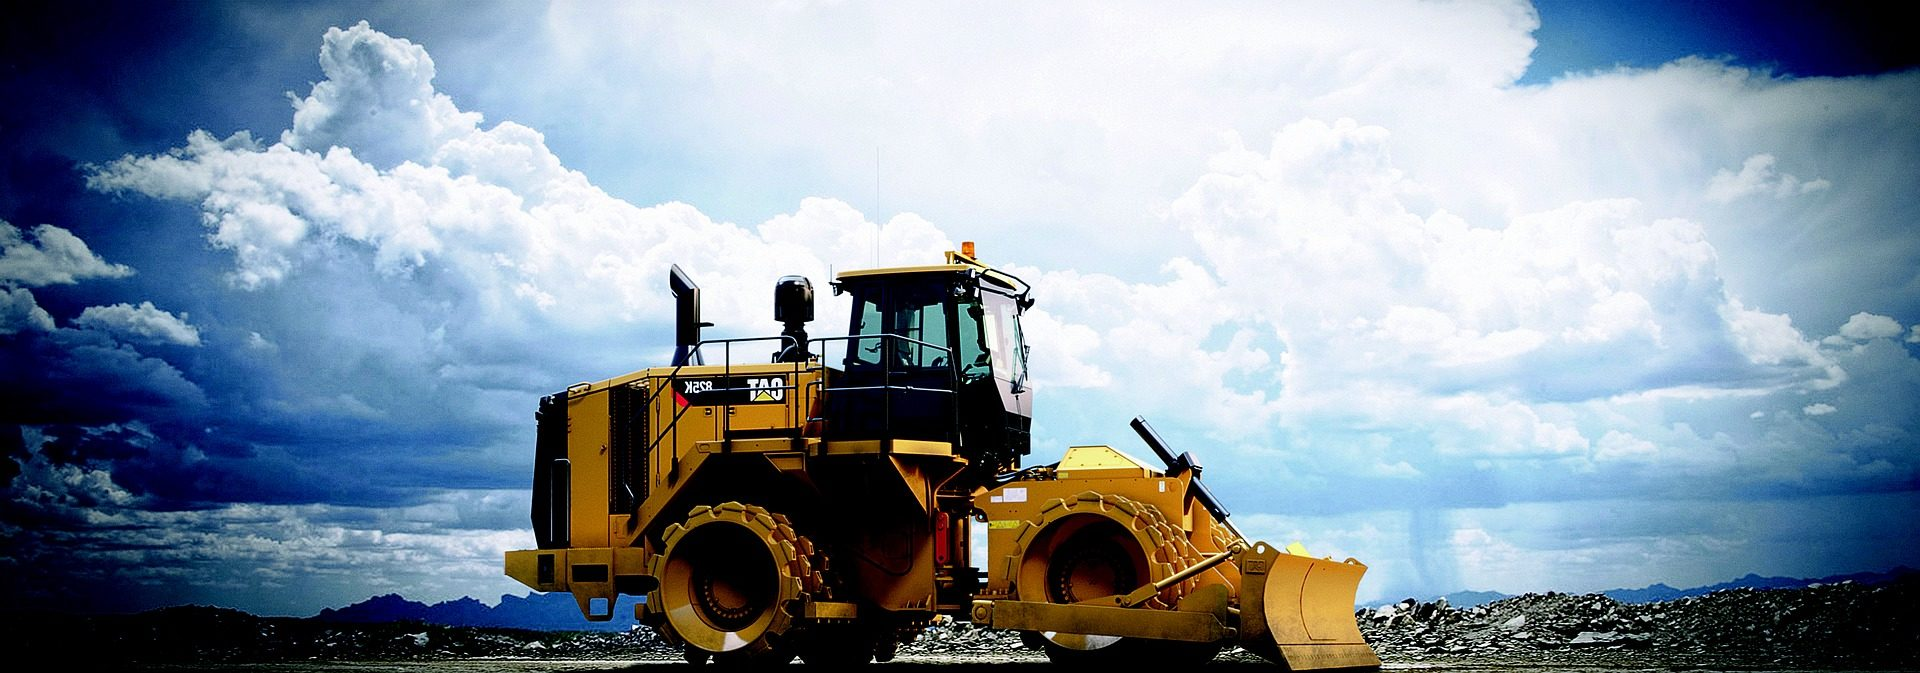 Engin Caterpillar